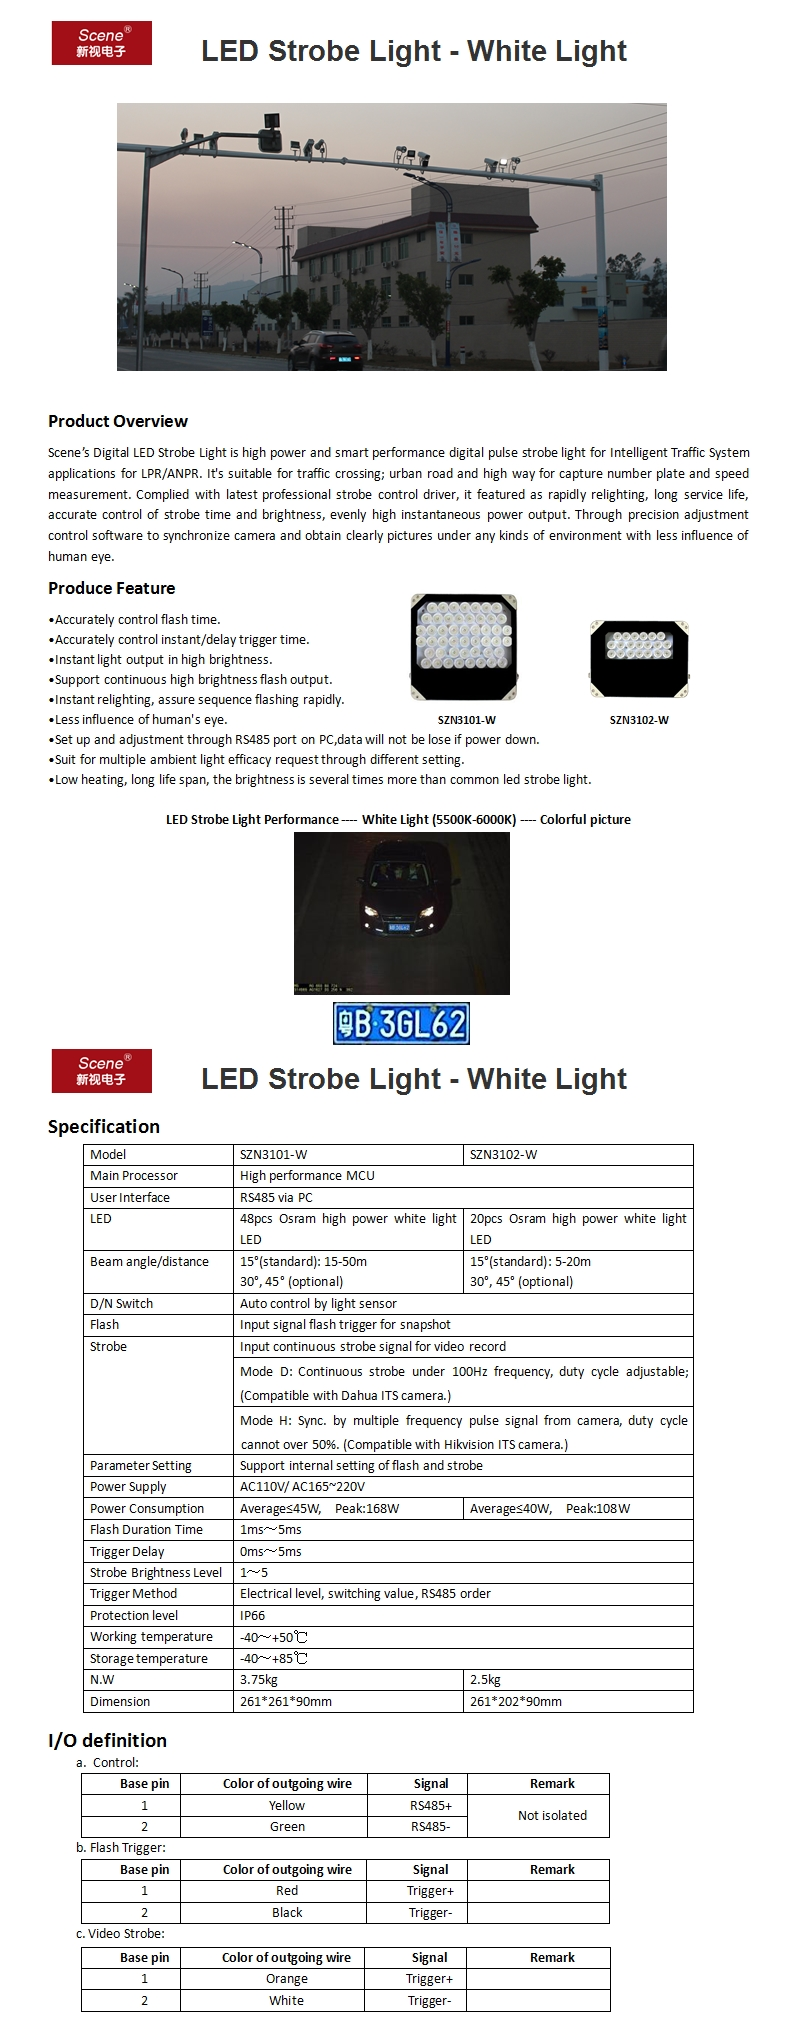 9.5Strobe Light - White Light.jpg